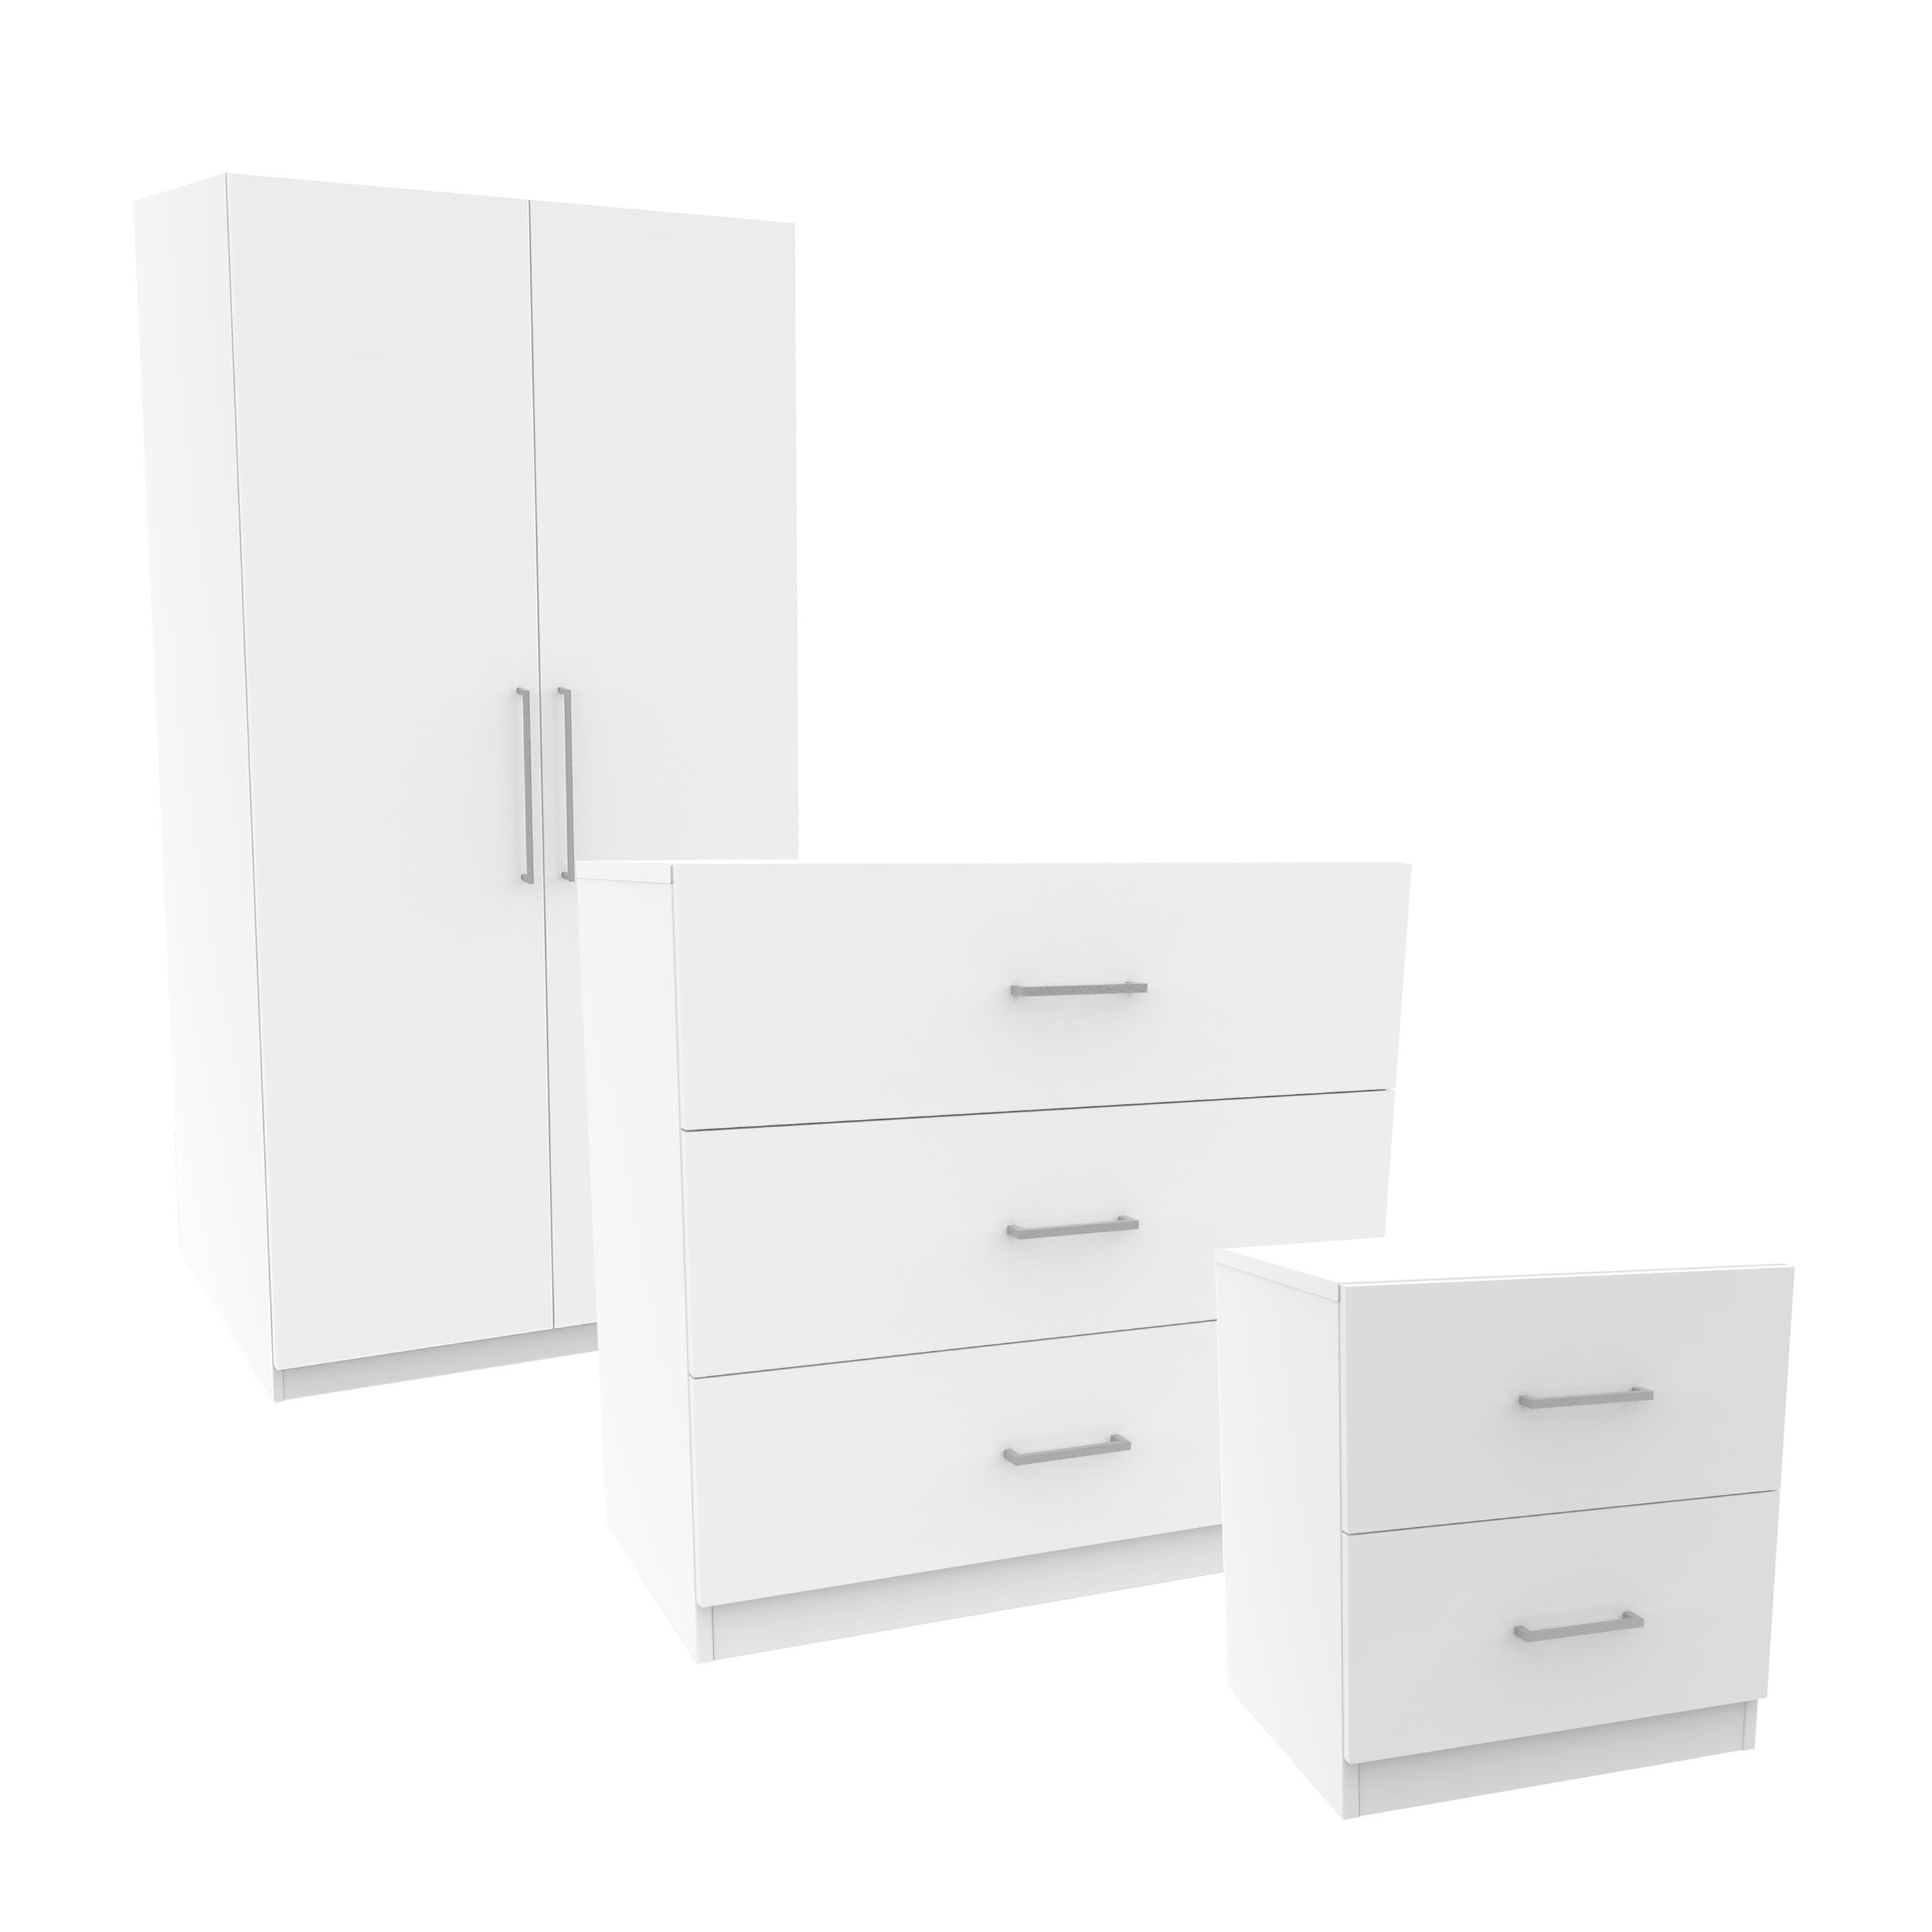 Darwin White 3 Piece Bedroom Furniture Set